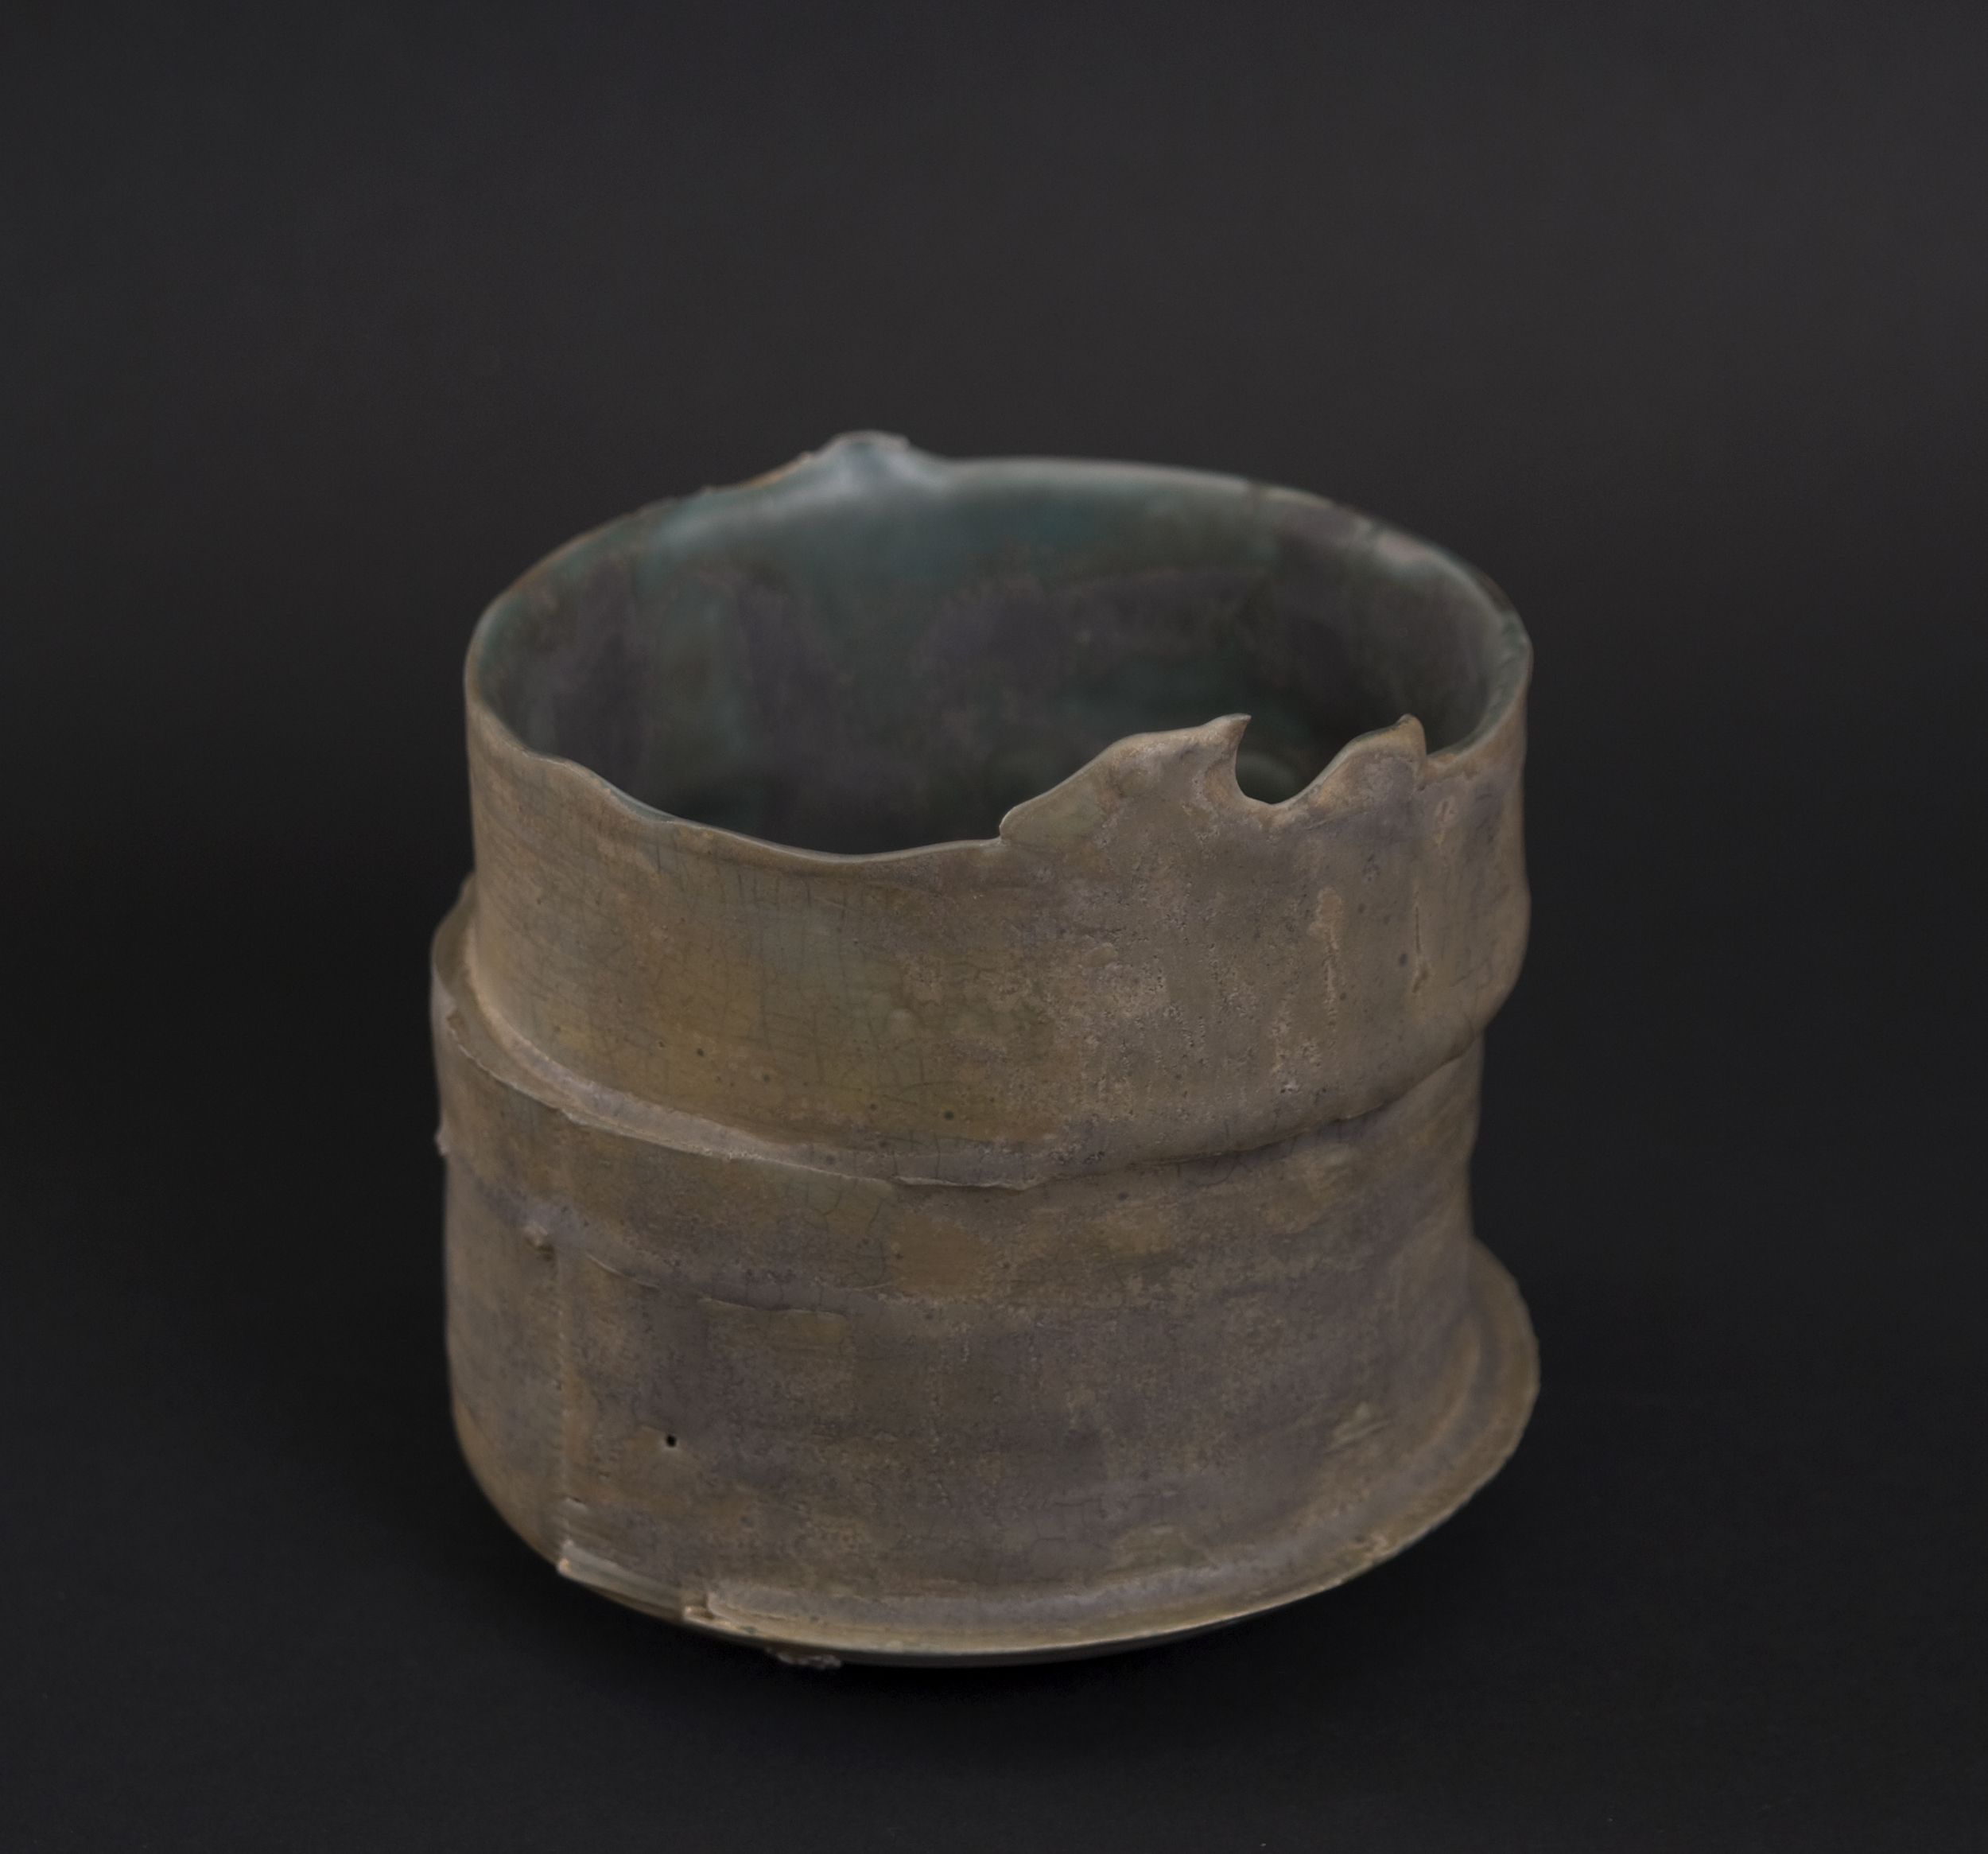 Hideo Matsumoto    Chawan with Signed Box  , 2009 Porcelain 4 x 4 x 4 inches / 10.2 x 10.2 x 10.2 cm / HMA 1